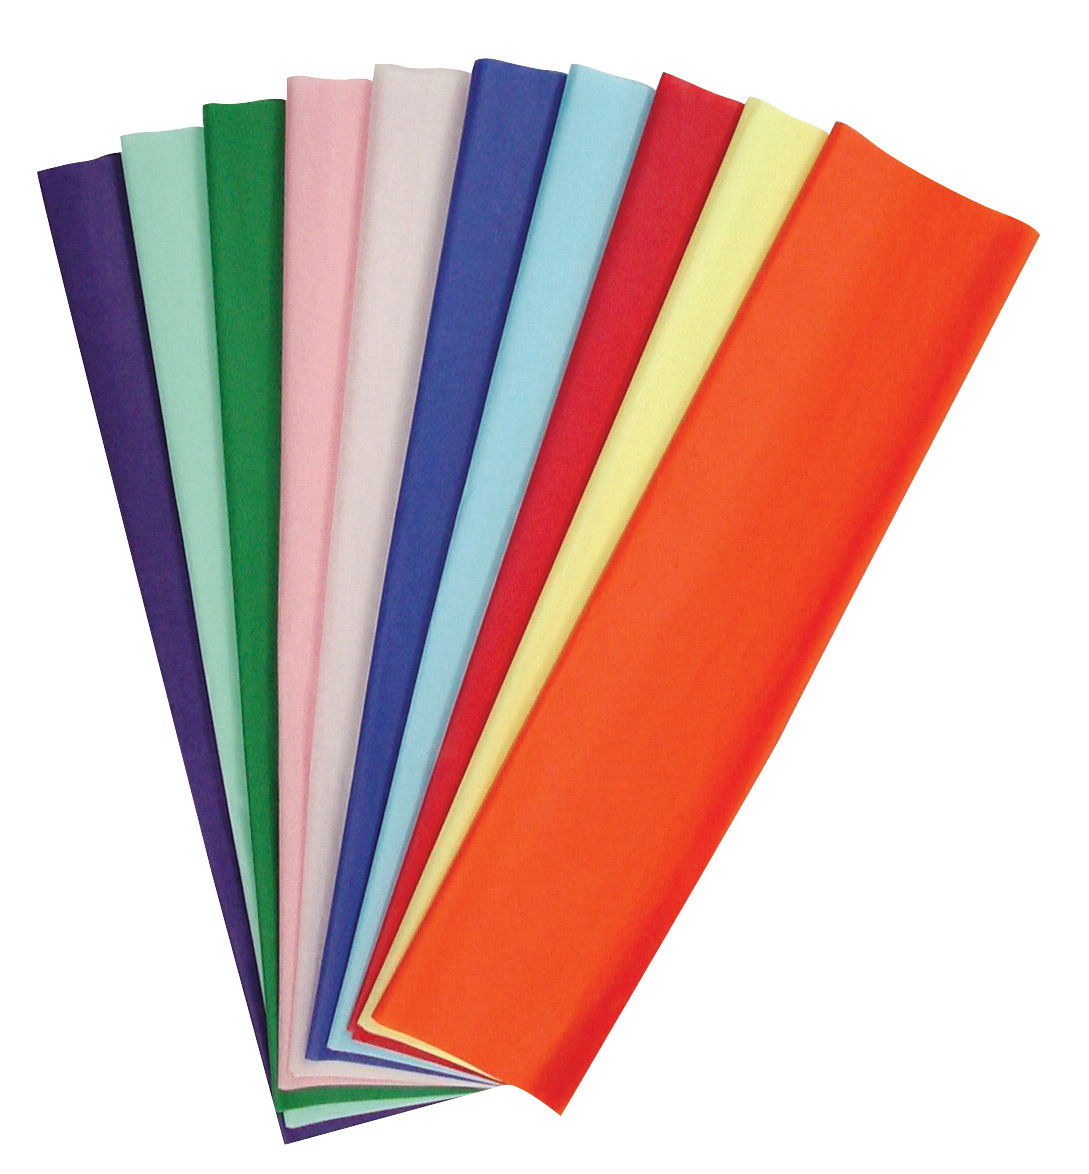 Kolorfast Non-Bleeding Craft Tissue Paper, 20 x 30 Inches, Assorted Colors, Pack of 50